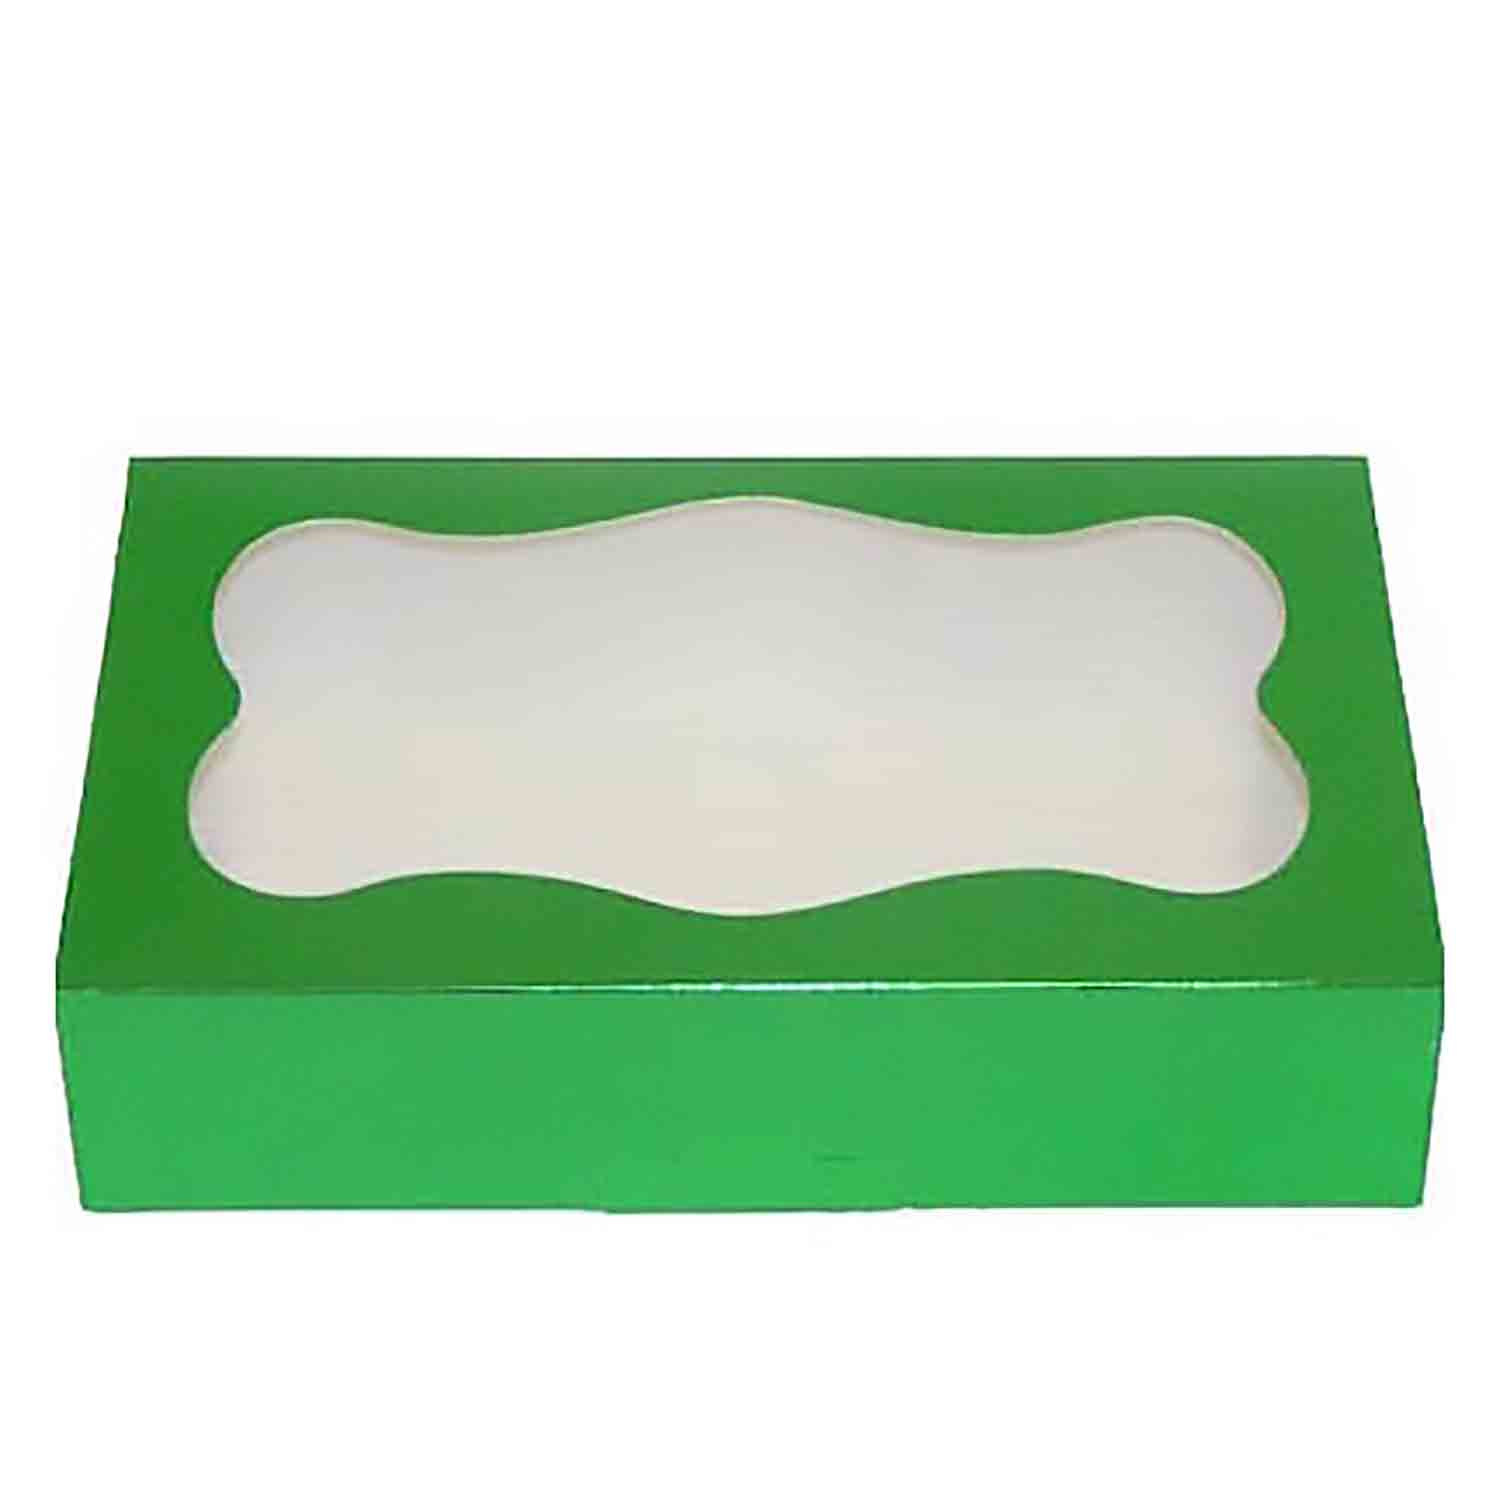 2 lb. Green Foil Cookie Box with Window